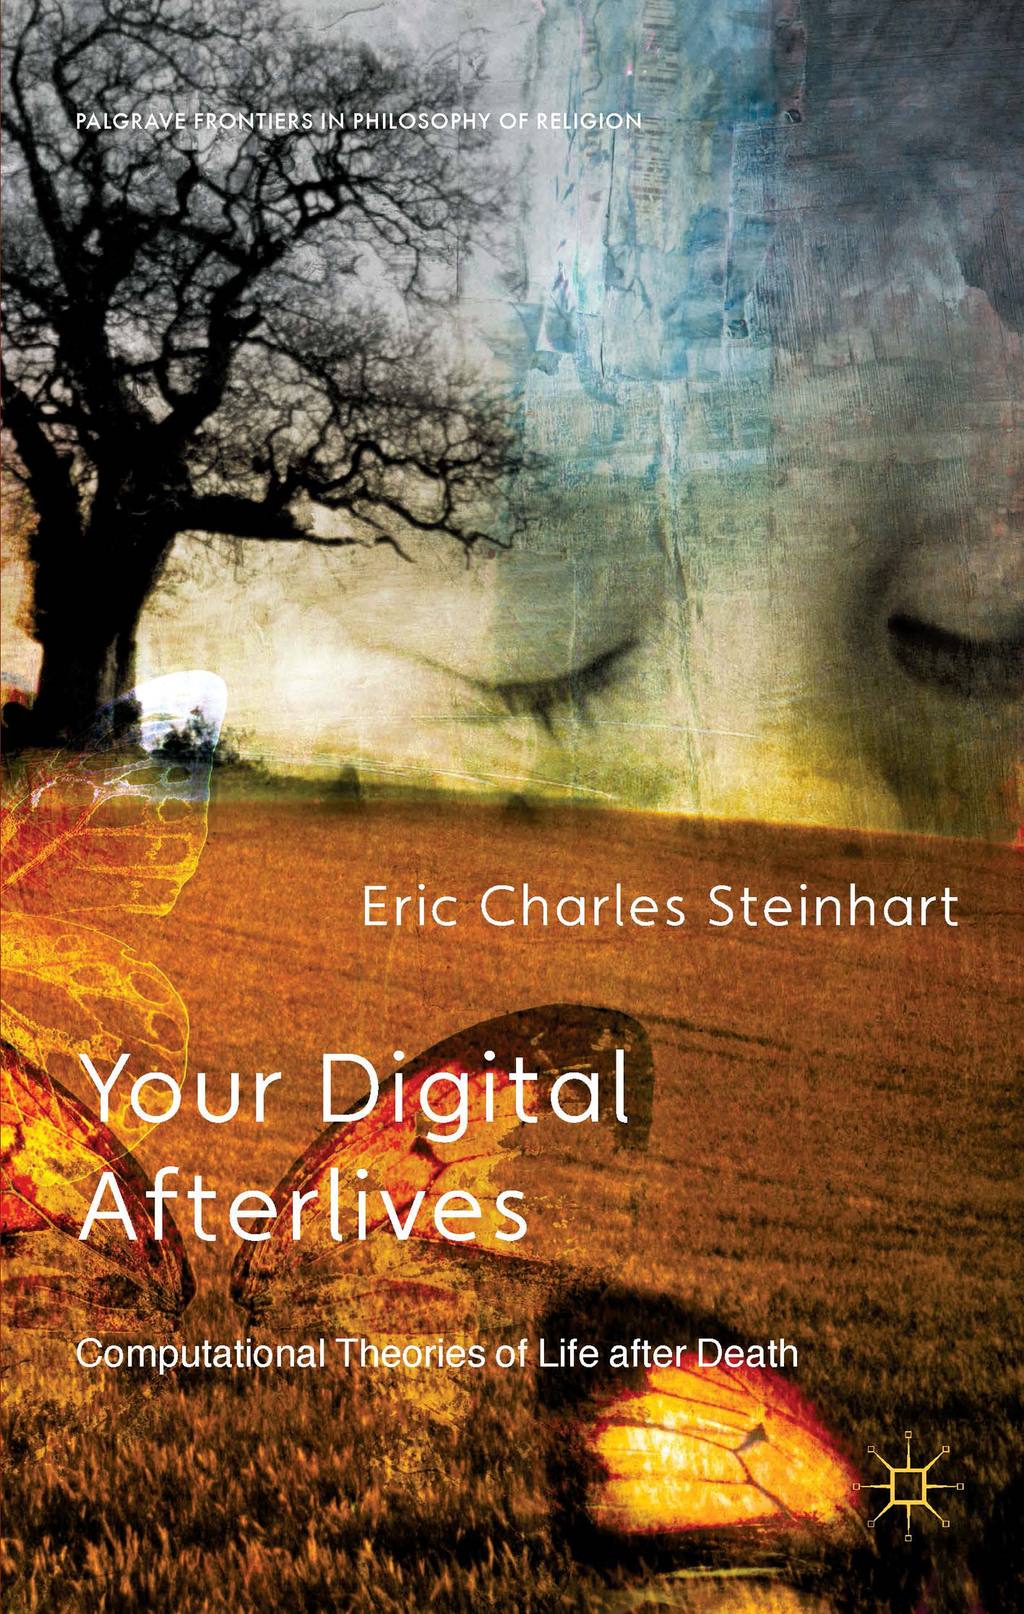 Your Digital Afterlives Computational Theories of Life after Death